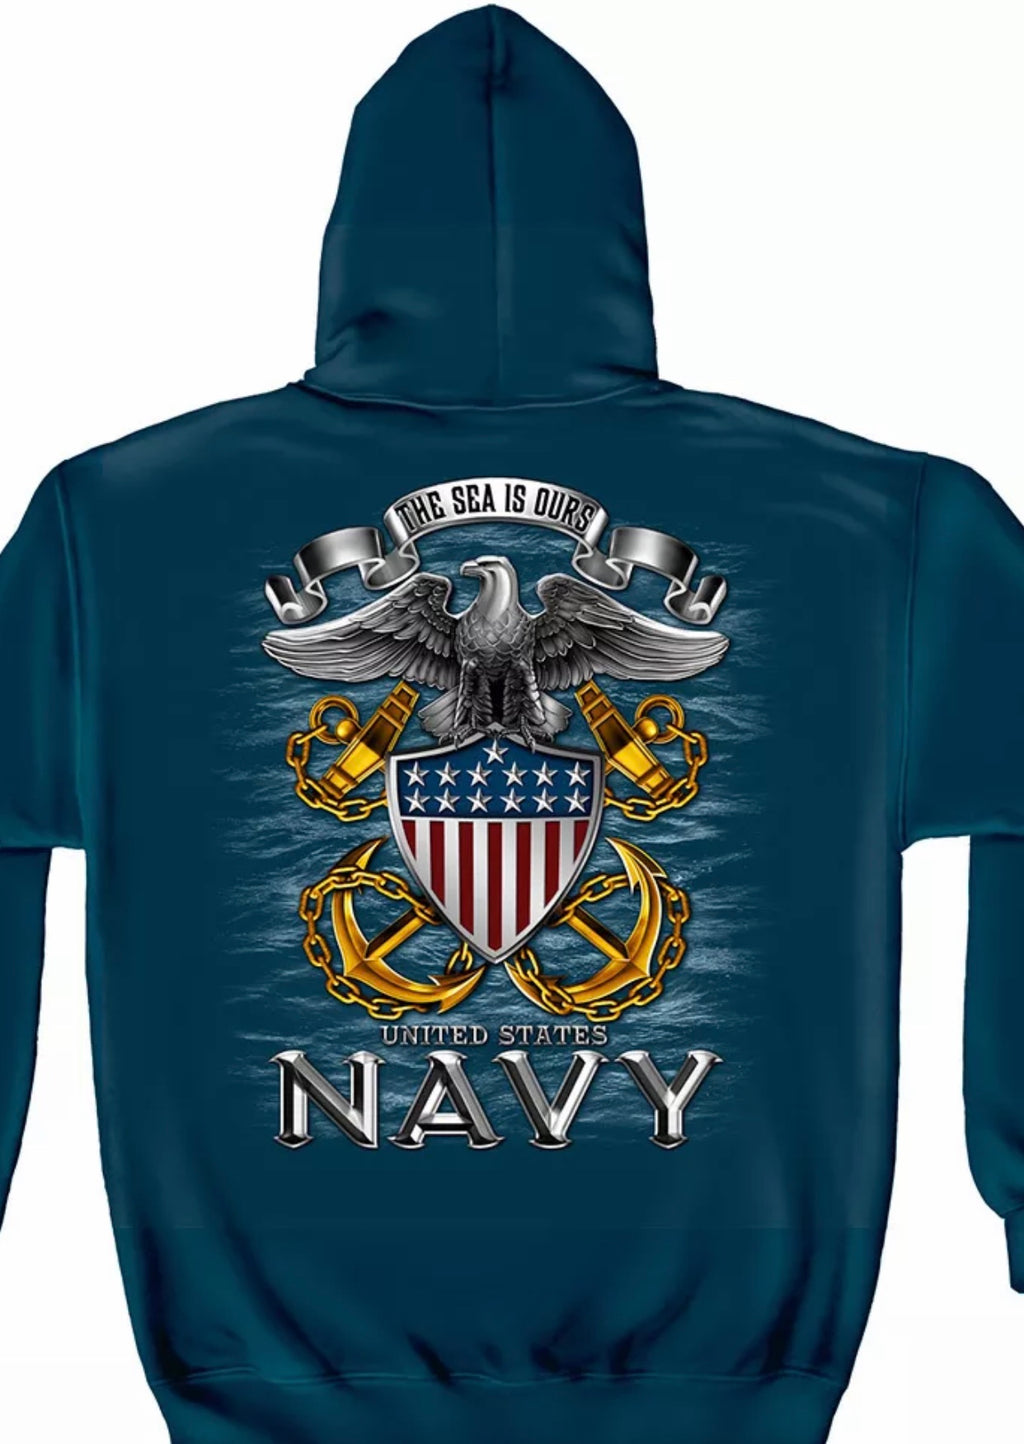 Navy The Sea Is Ours SweatShirt - The Wall Kids, Inc.